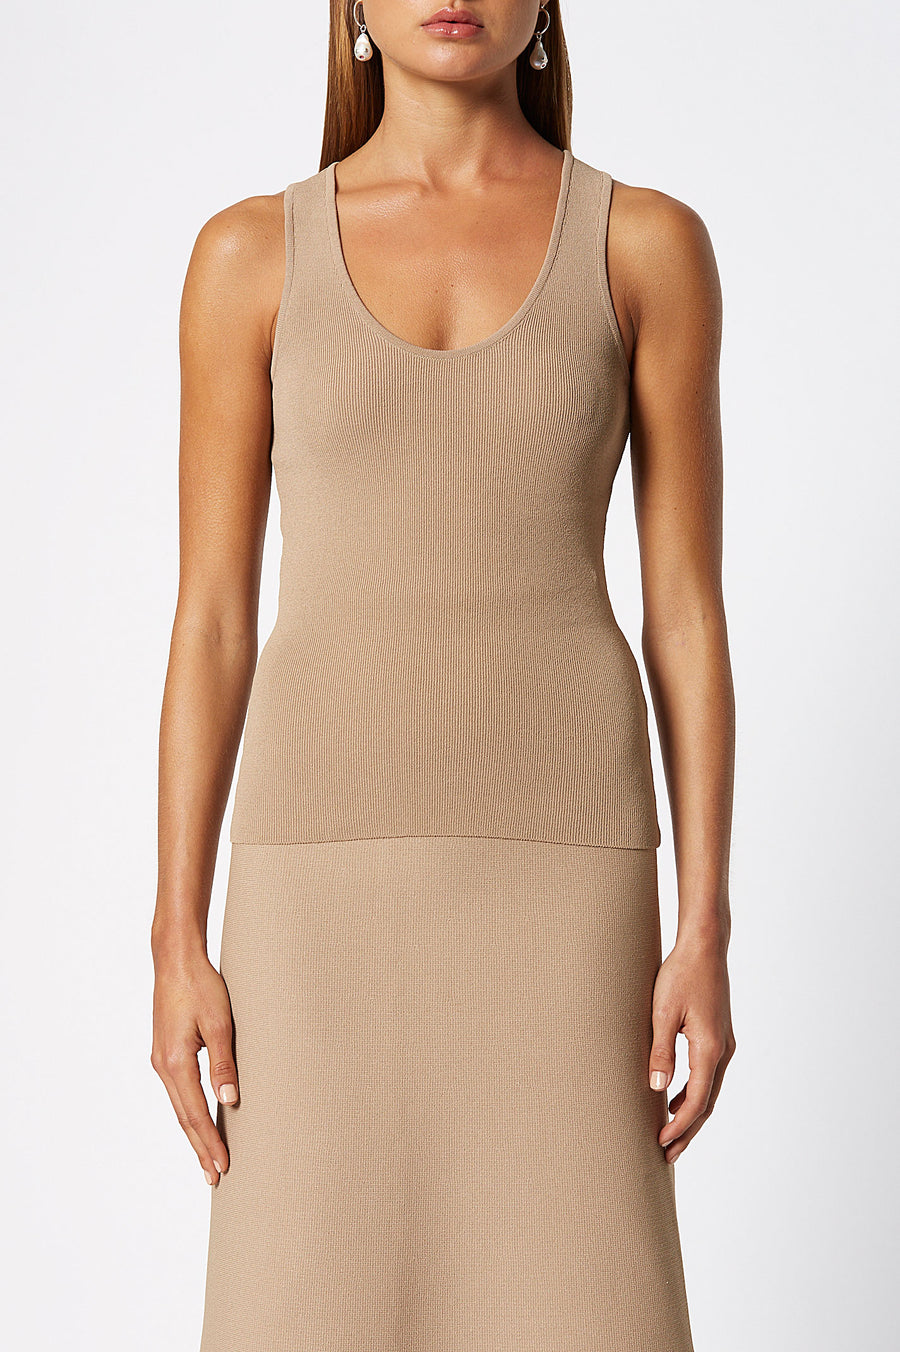 Crepe Knit Singlet, round scoop neckline, medium shoulder straps, intended to fit close to the body, Color Camel